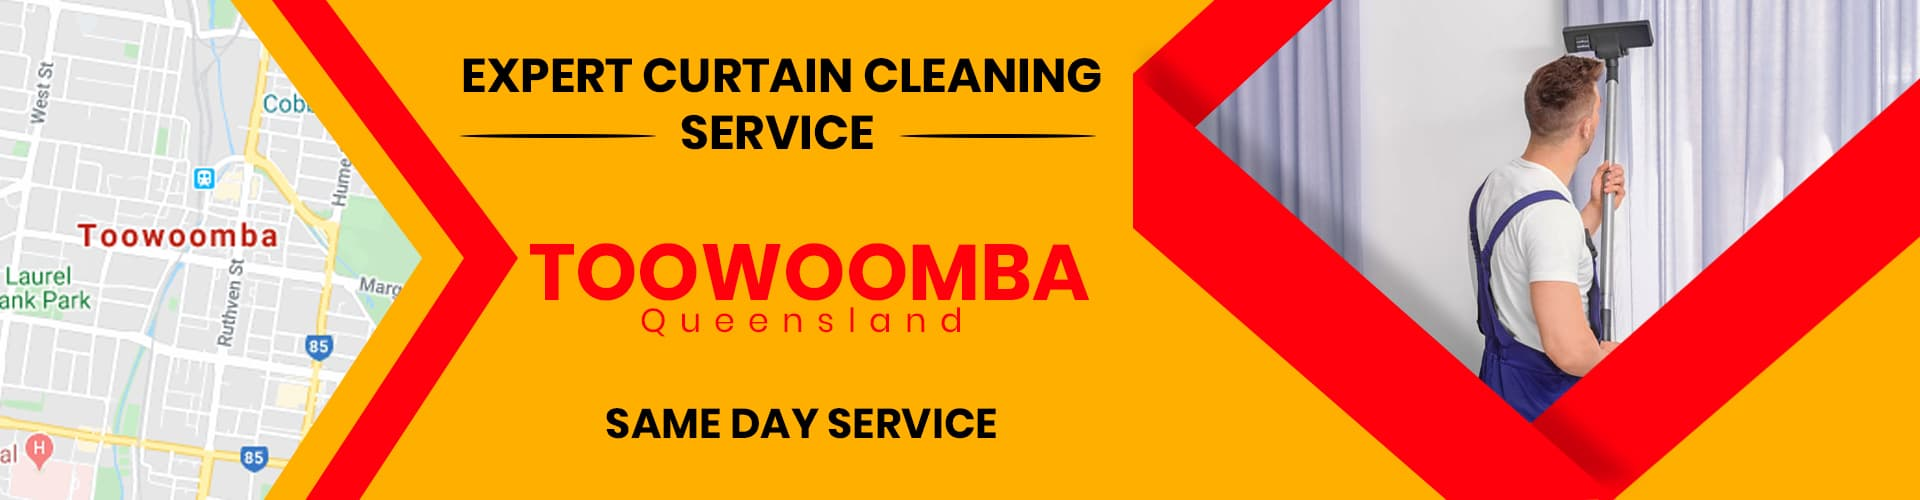 Curtain Cleaning Toowoomba